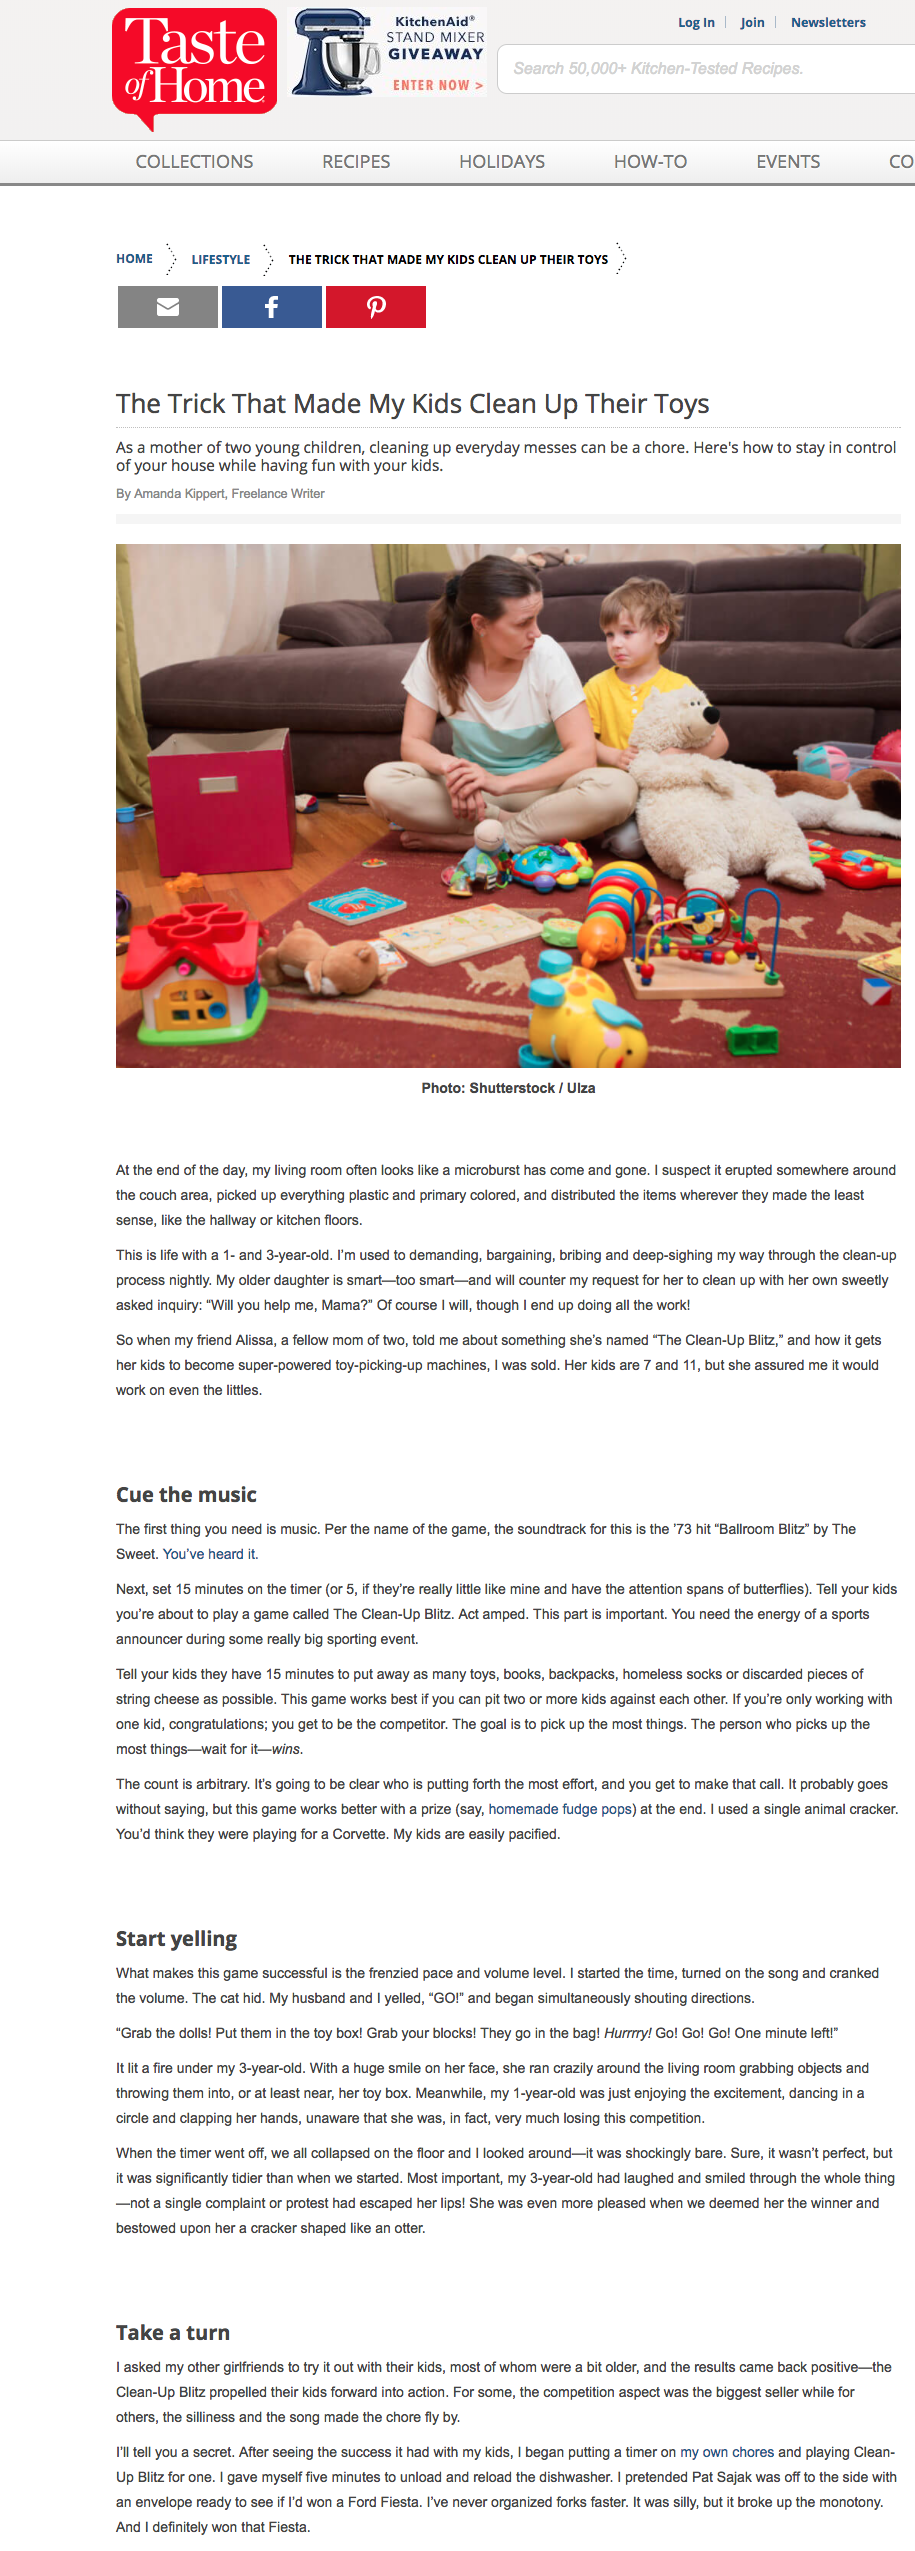 screencapture-tasteofhome-article-the-proven-way-to-get-your-kids-to-help-clean-around-the-house-1515457077816.png